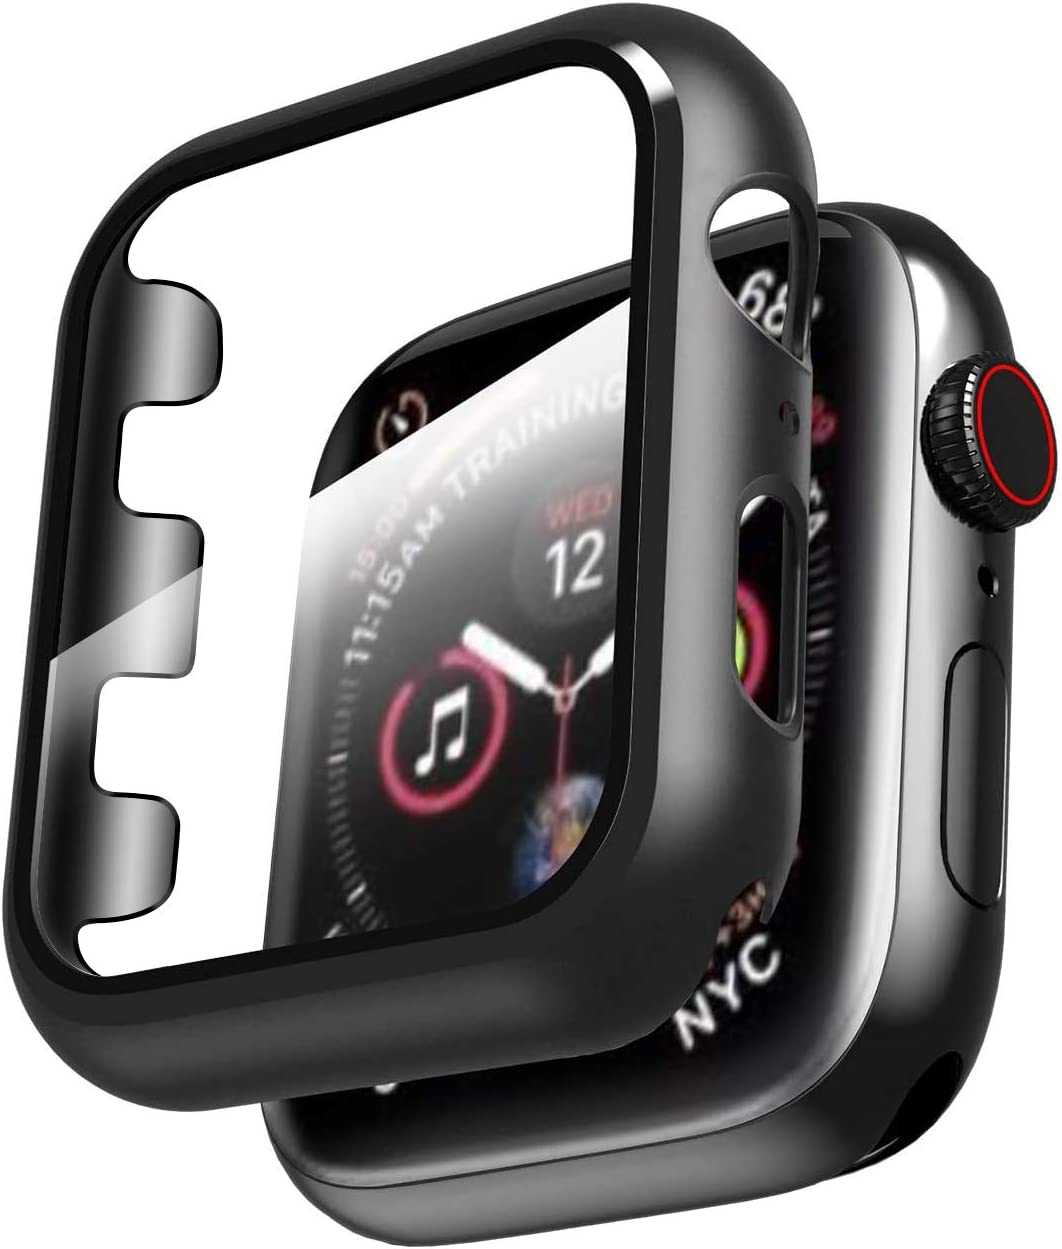 Smiling Case for Apple Watch Series 3 & Series 2 42mm with Buit in Tempered Glass Screen Protector- All Around Hard PC Protective Case High Definition Clear Ultra-Thin Cover for iwatch (Black, 42mm)